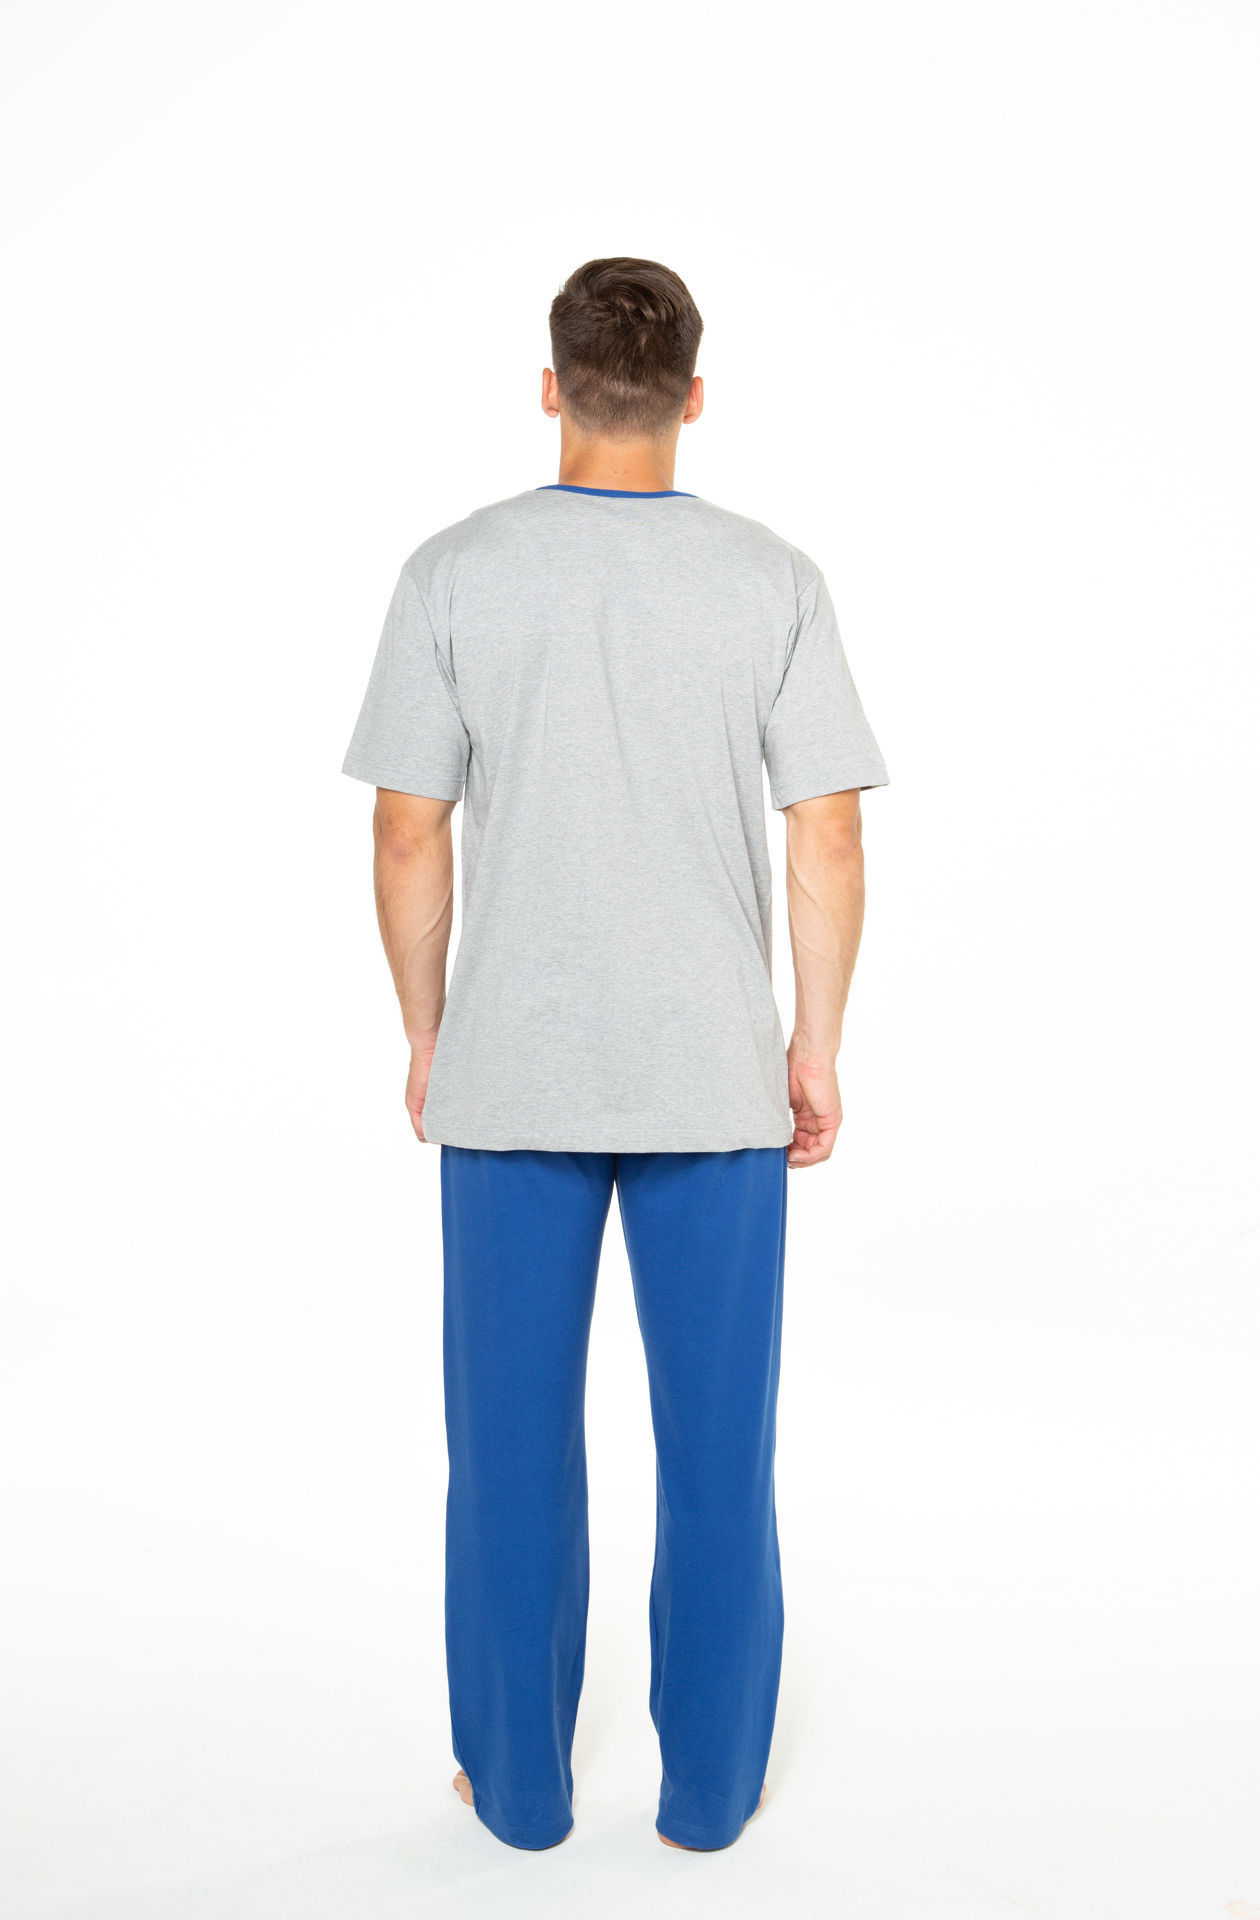 Picture of Men's pajamas